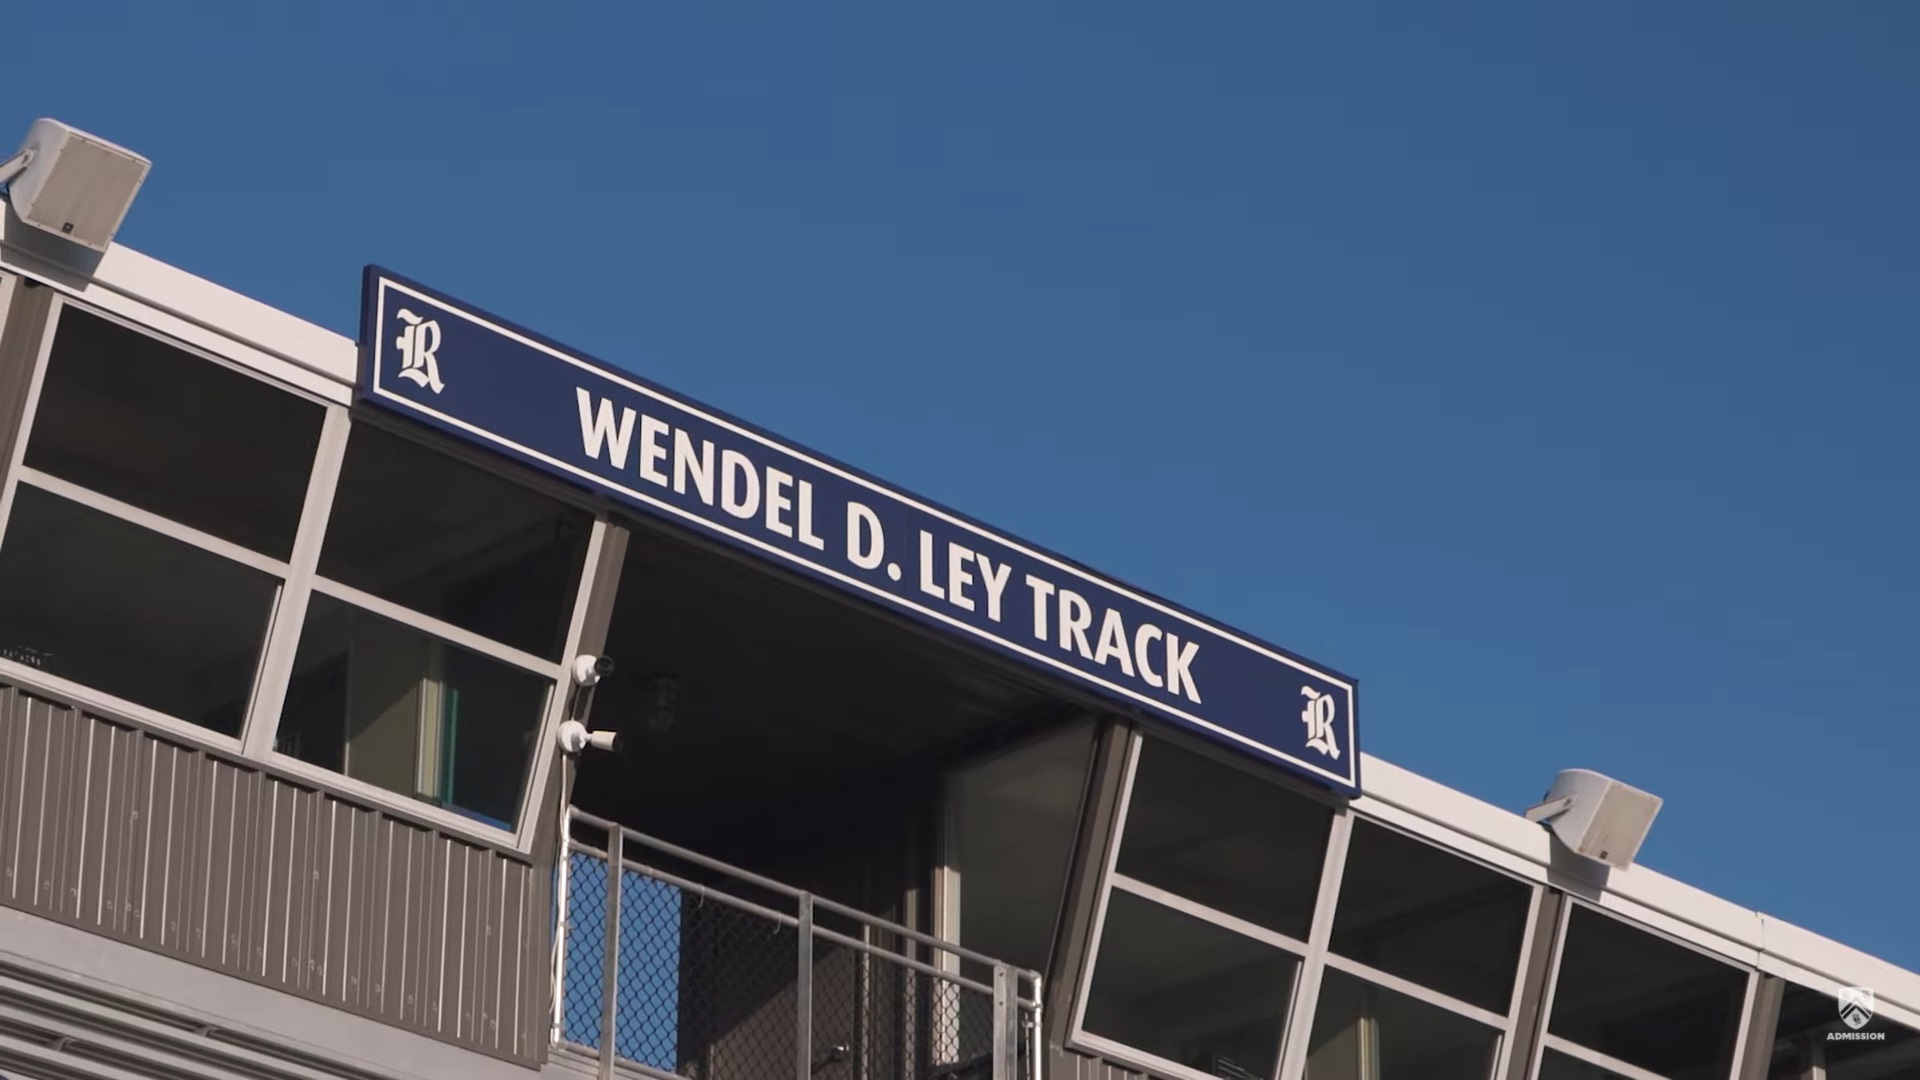 Picture of a sign inside of the stadium that says Wendel. D. Ley Track.